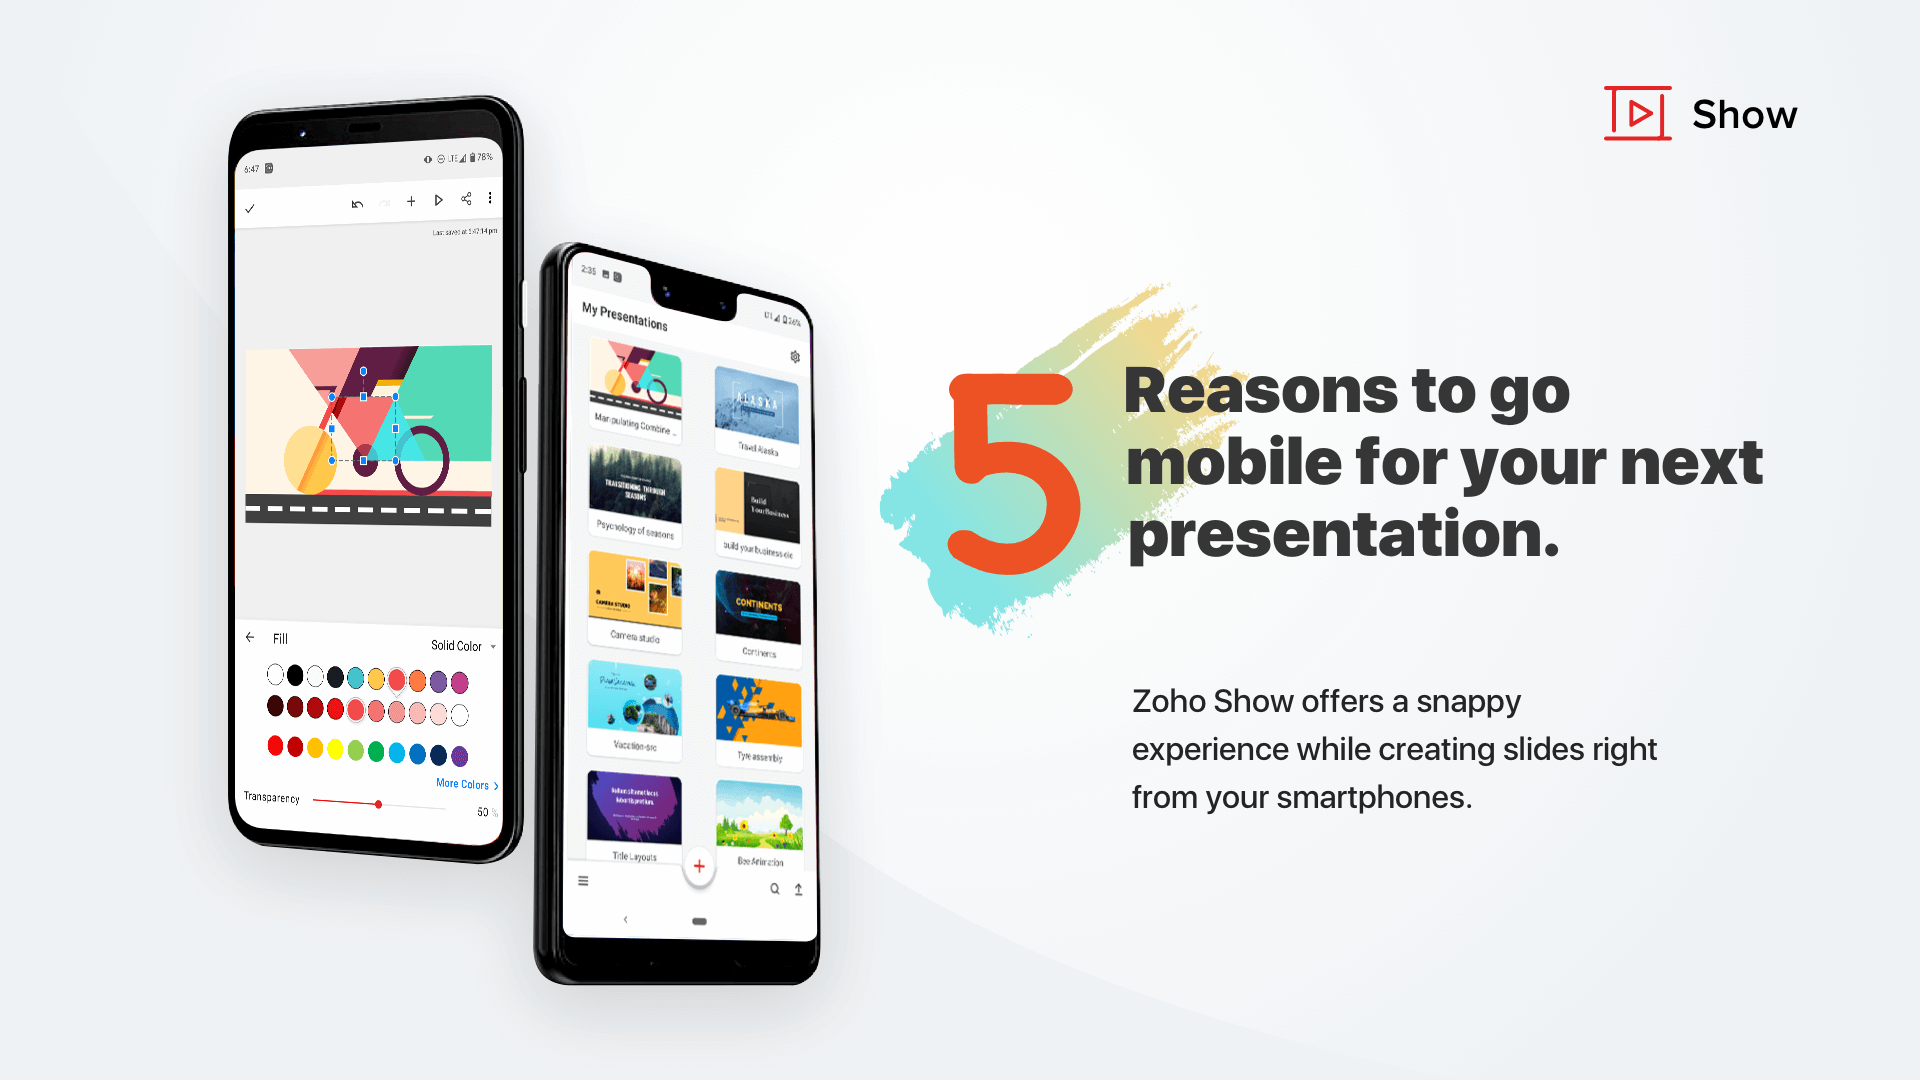 5 reasons to go mobile for your next presentation